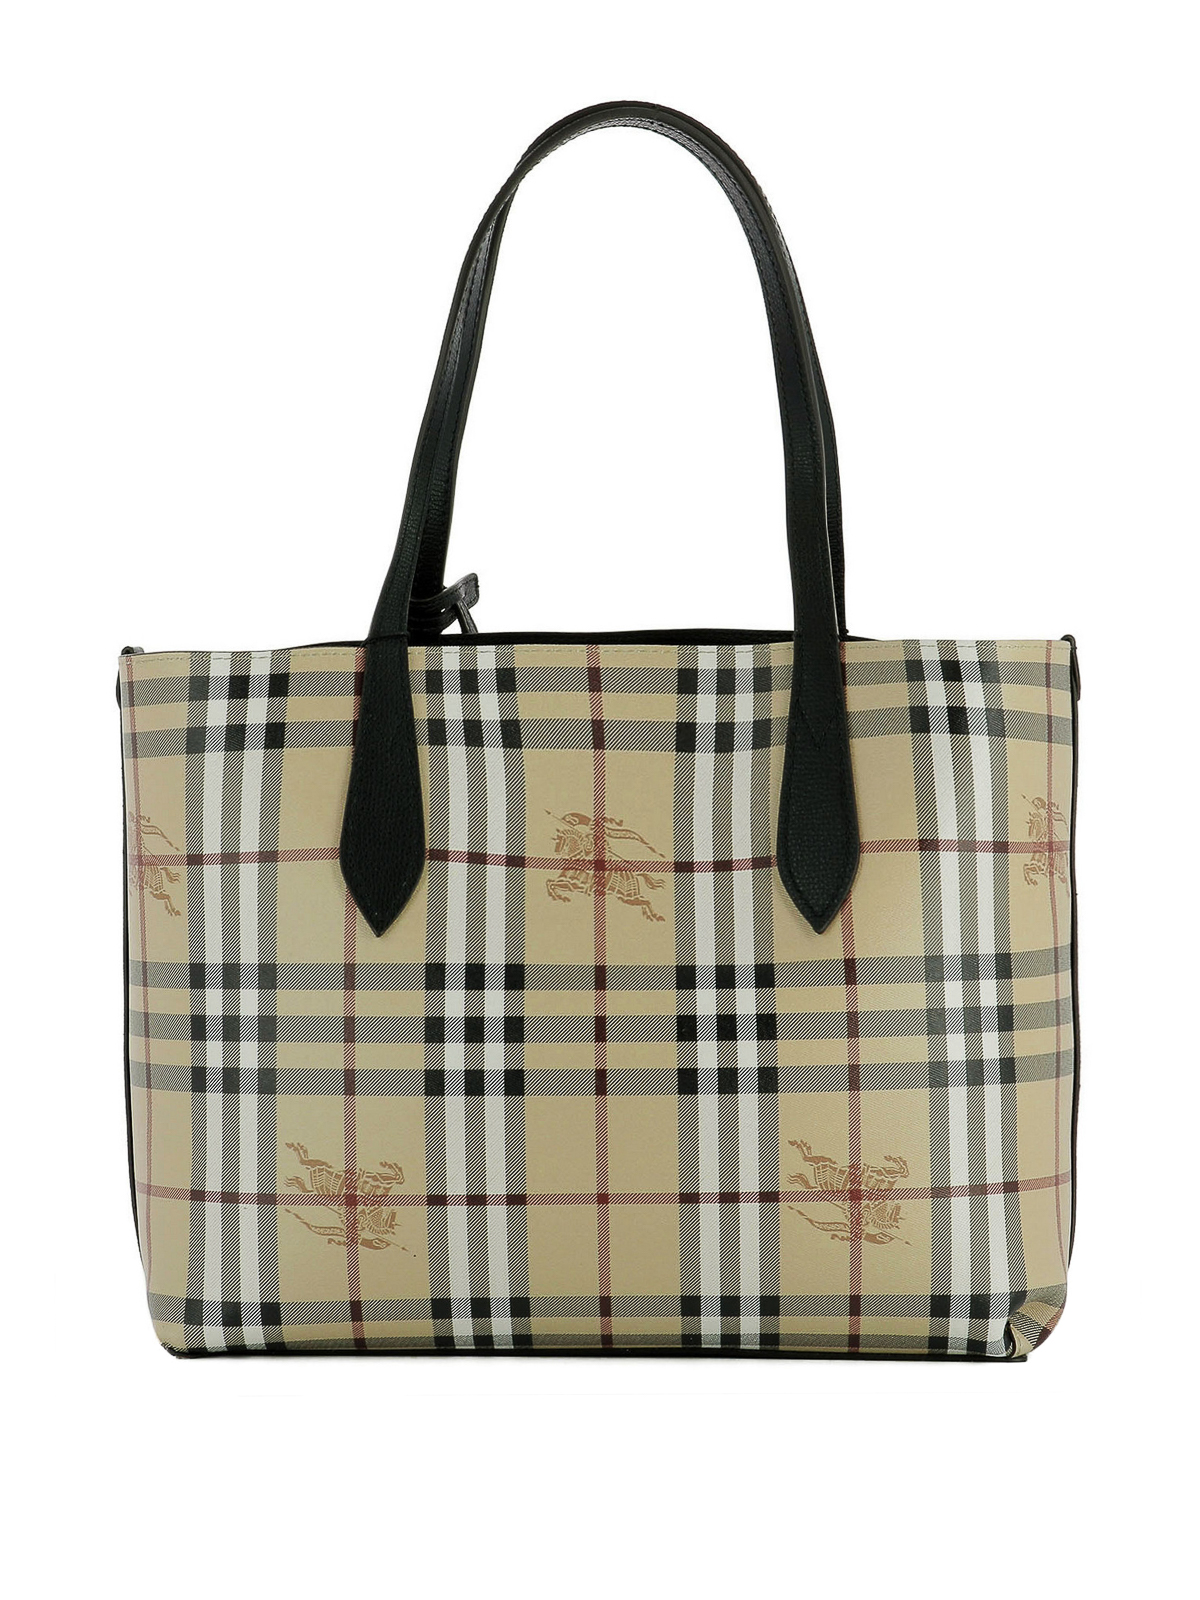 bc6a565be15a Burberry - Leather small reversible tote - totes bags - 4049502